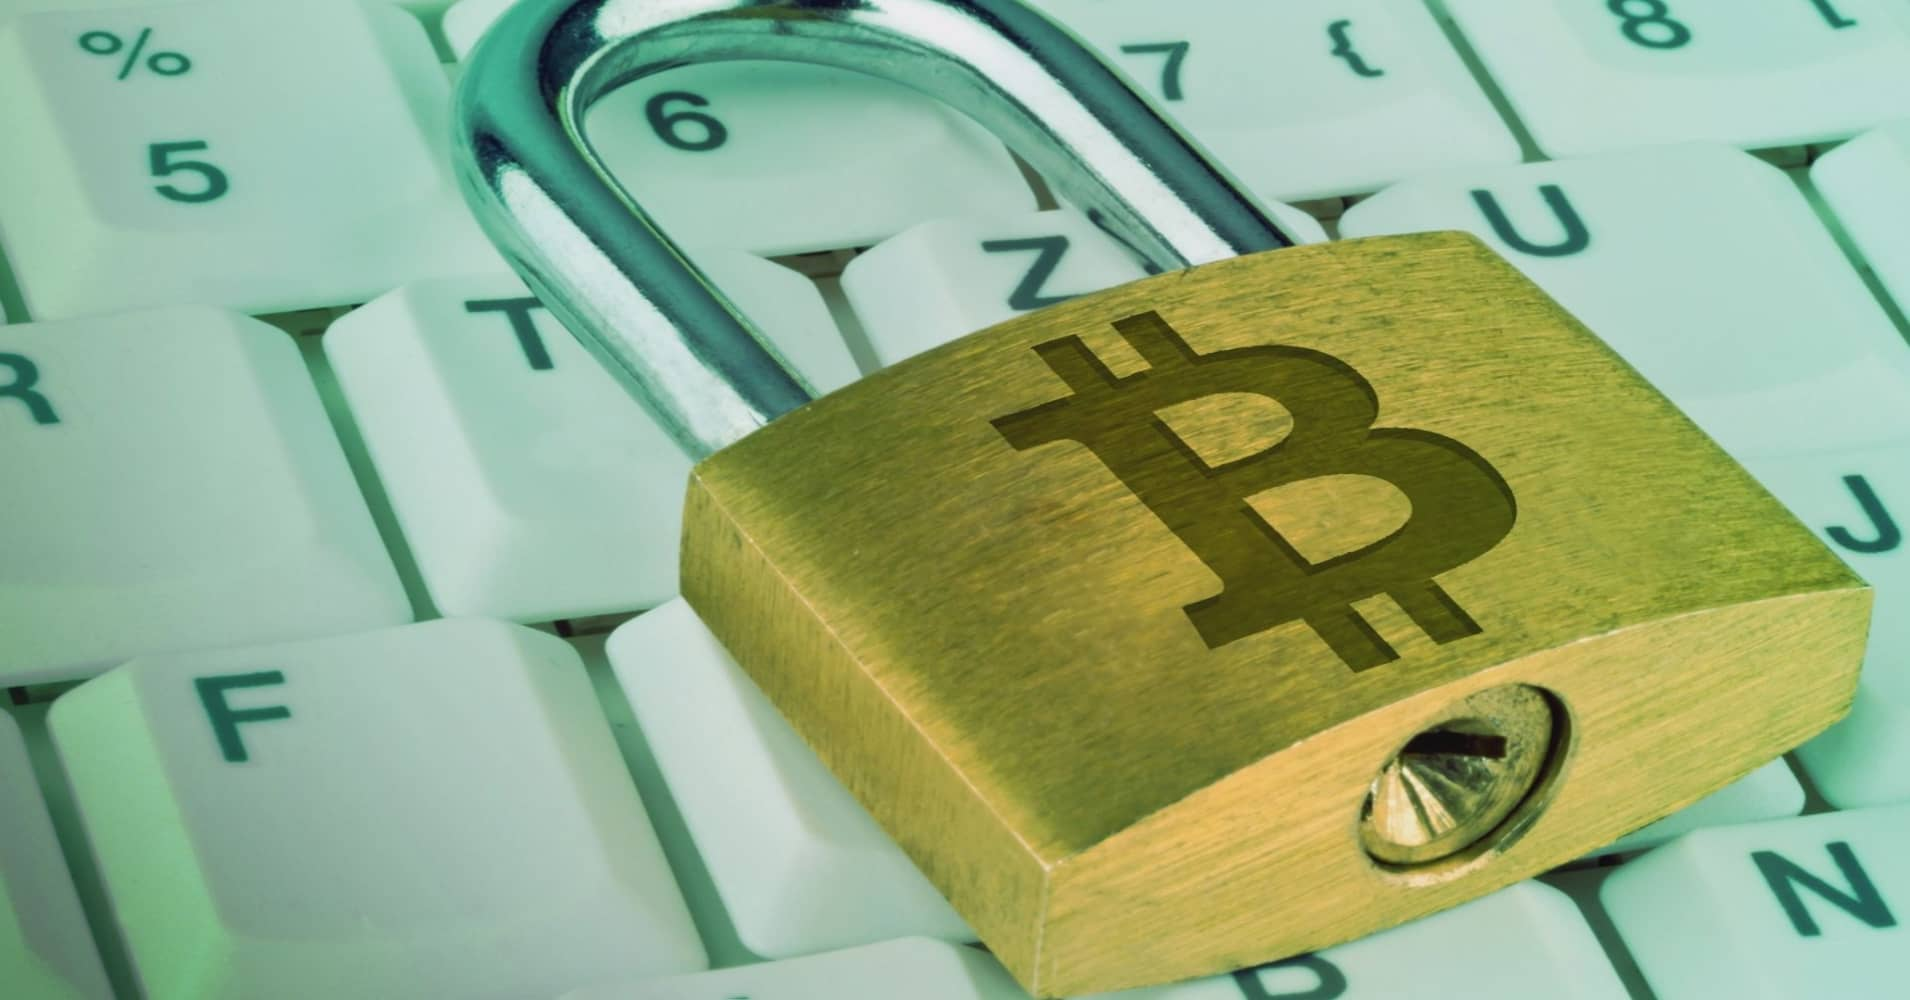 Hackers May Have Made Off With More Than 60 Million Worth Of Bitcoin